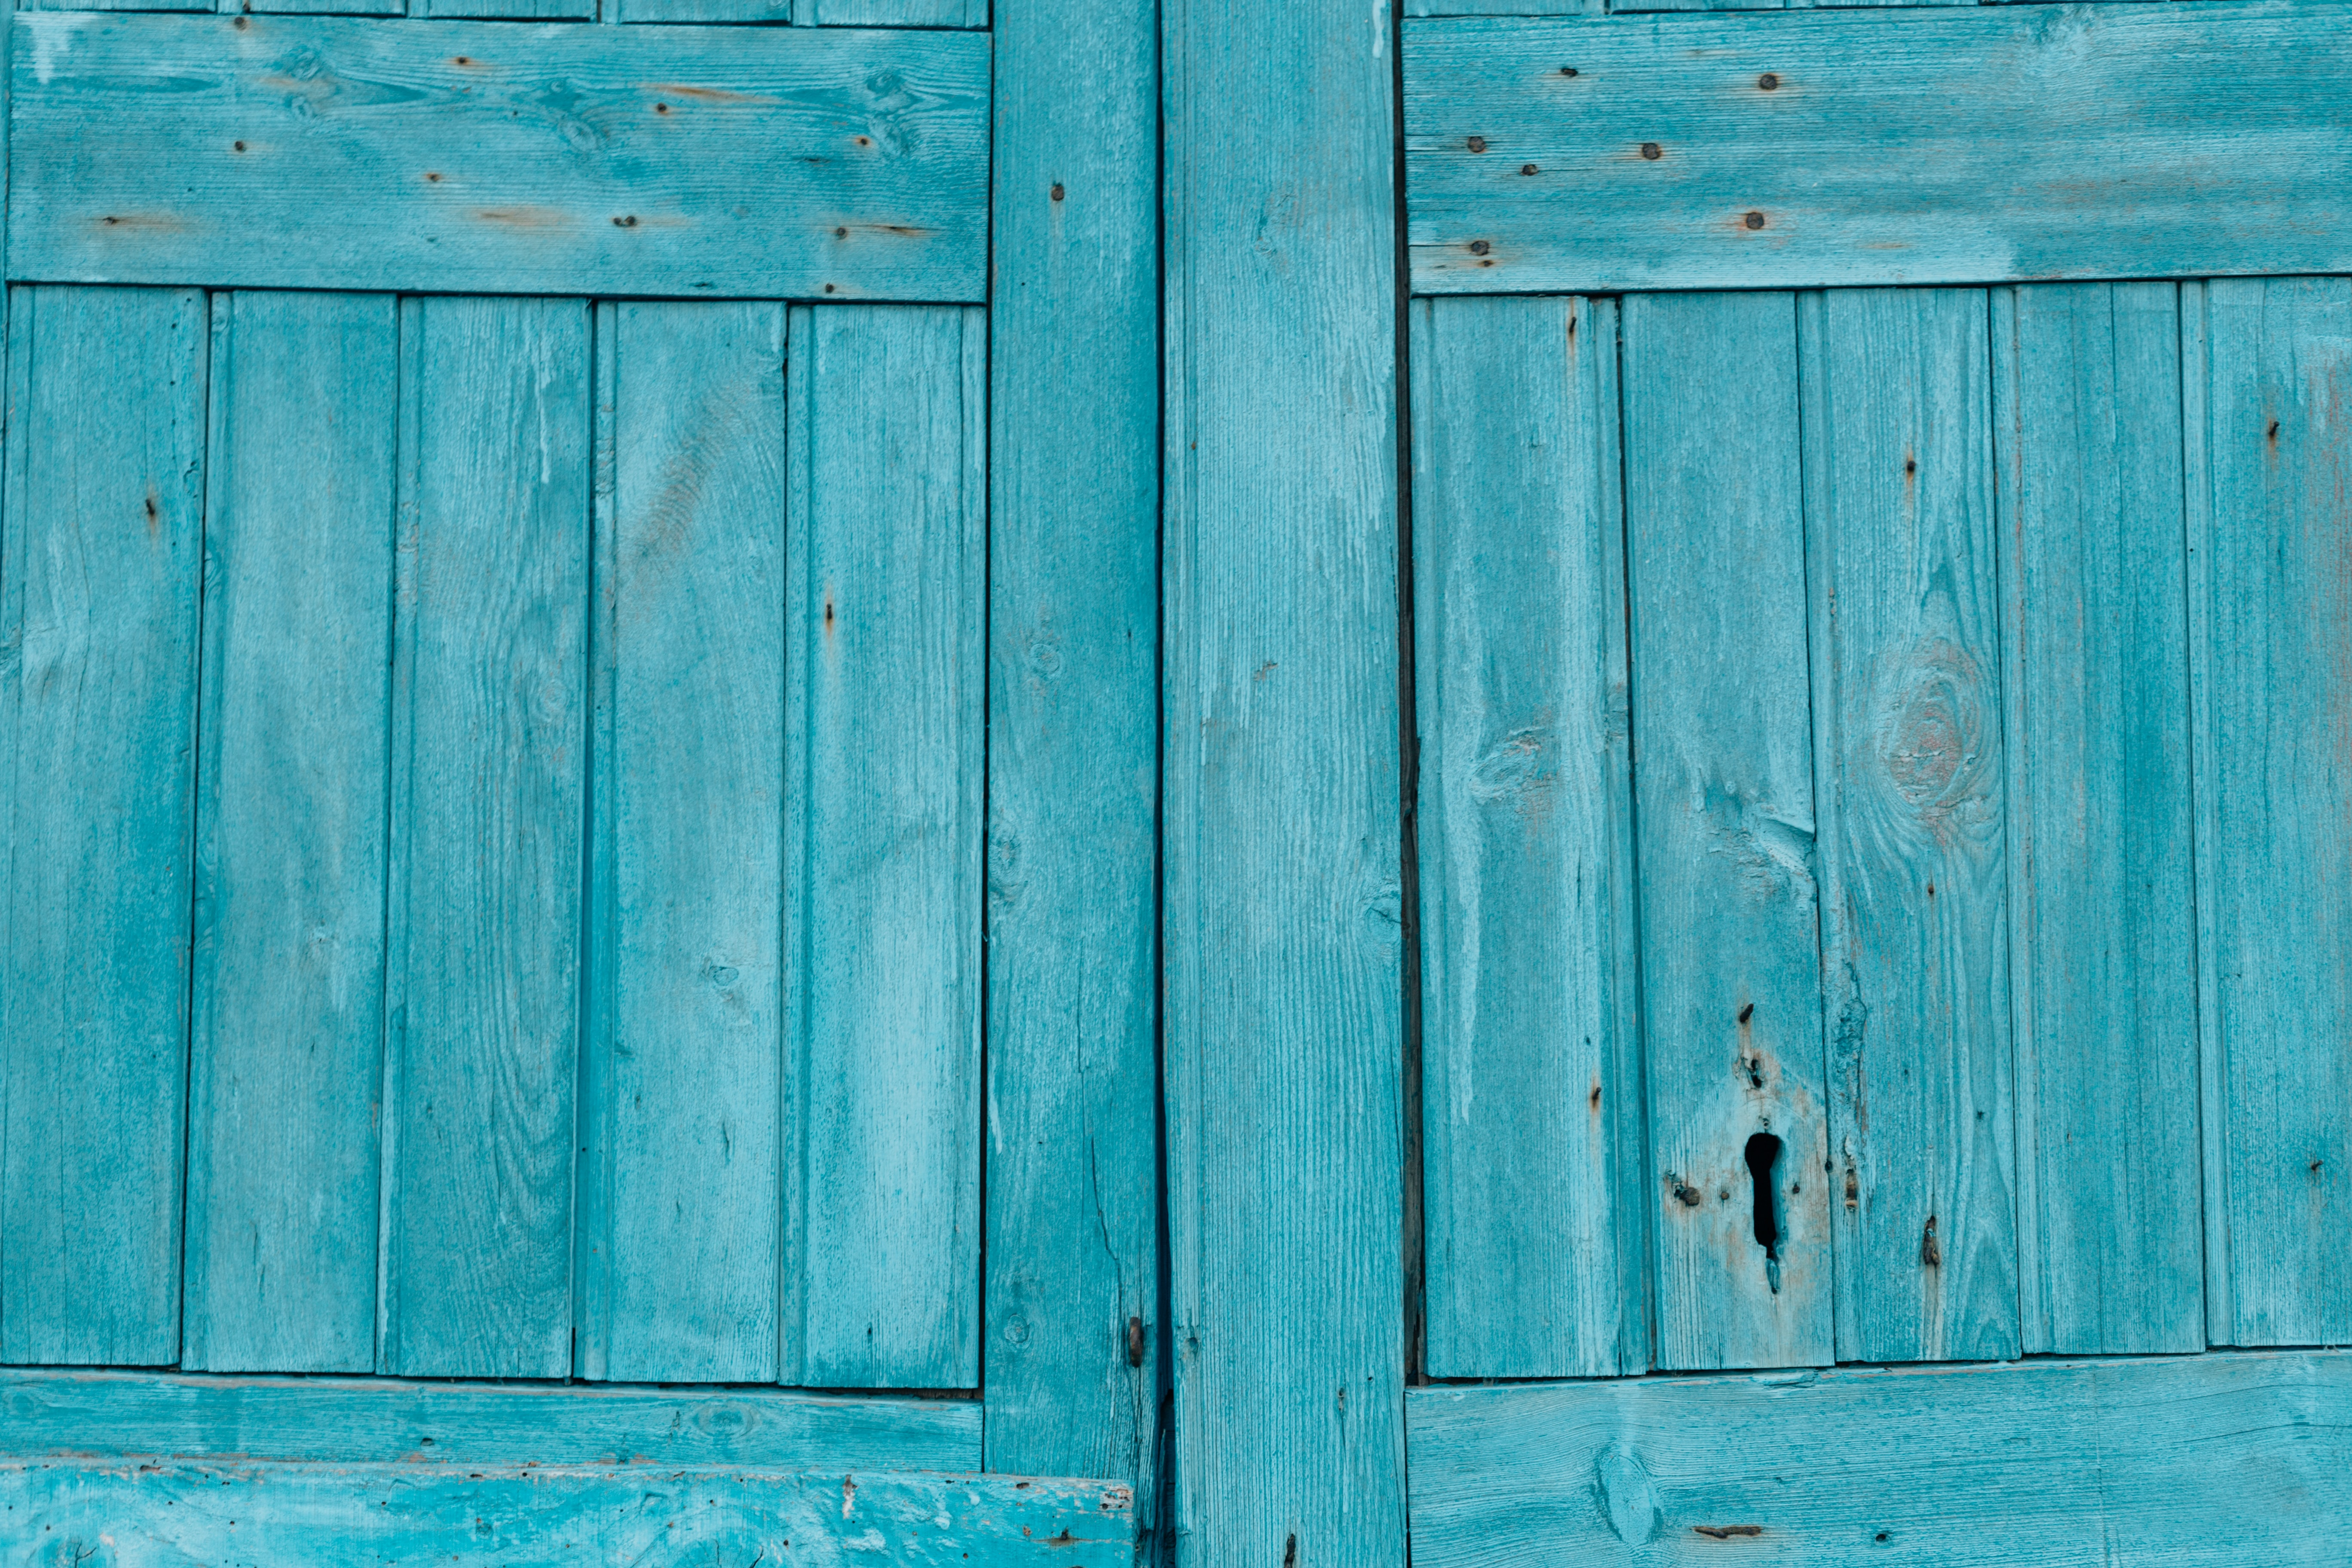 A blue wooden door texture background, taken in Malfa, Sicily, Italy